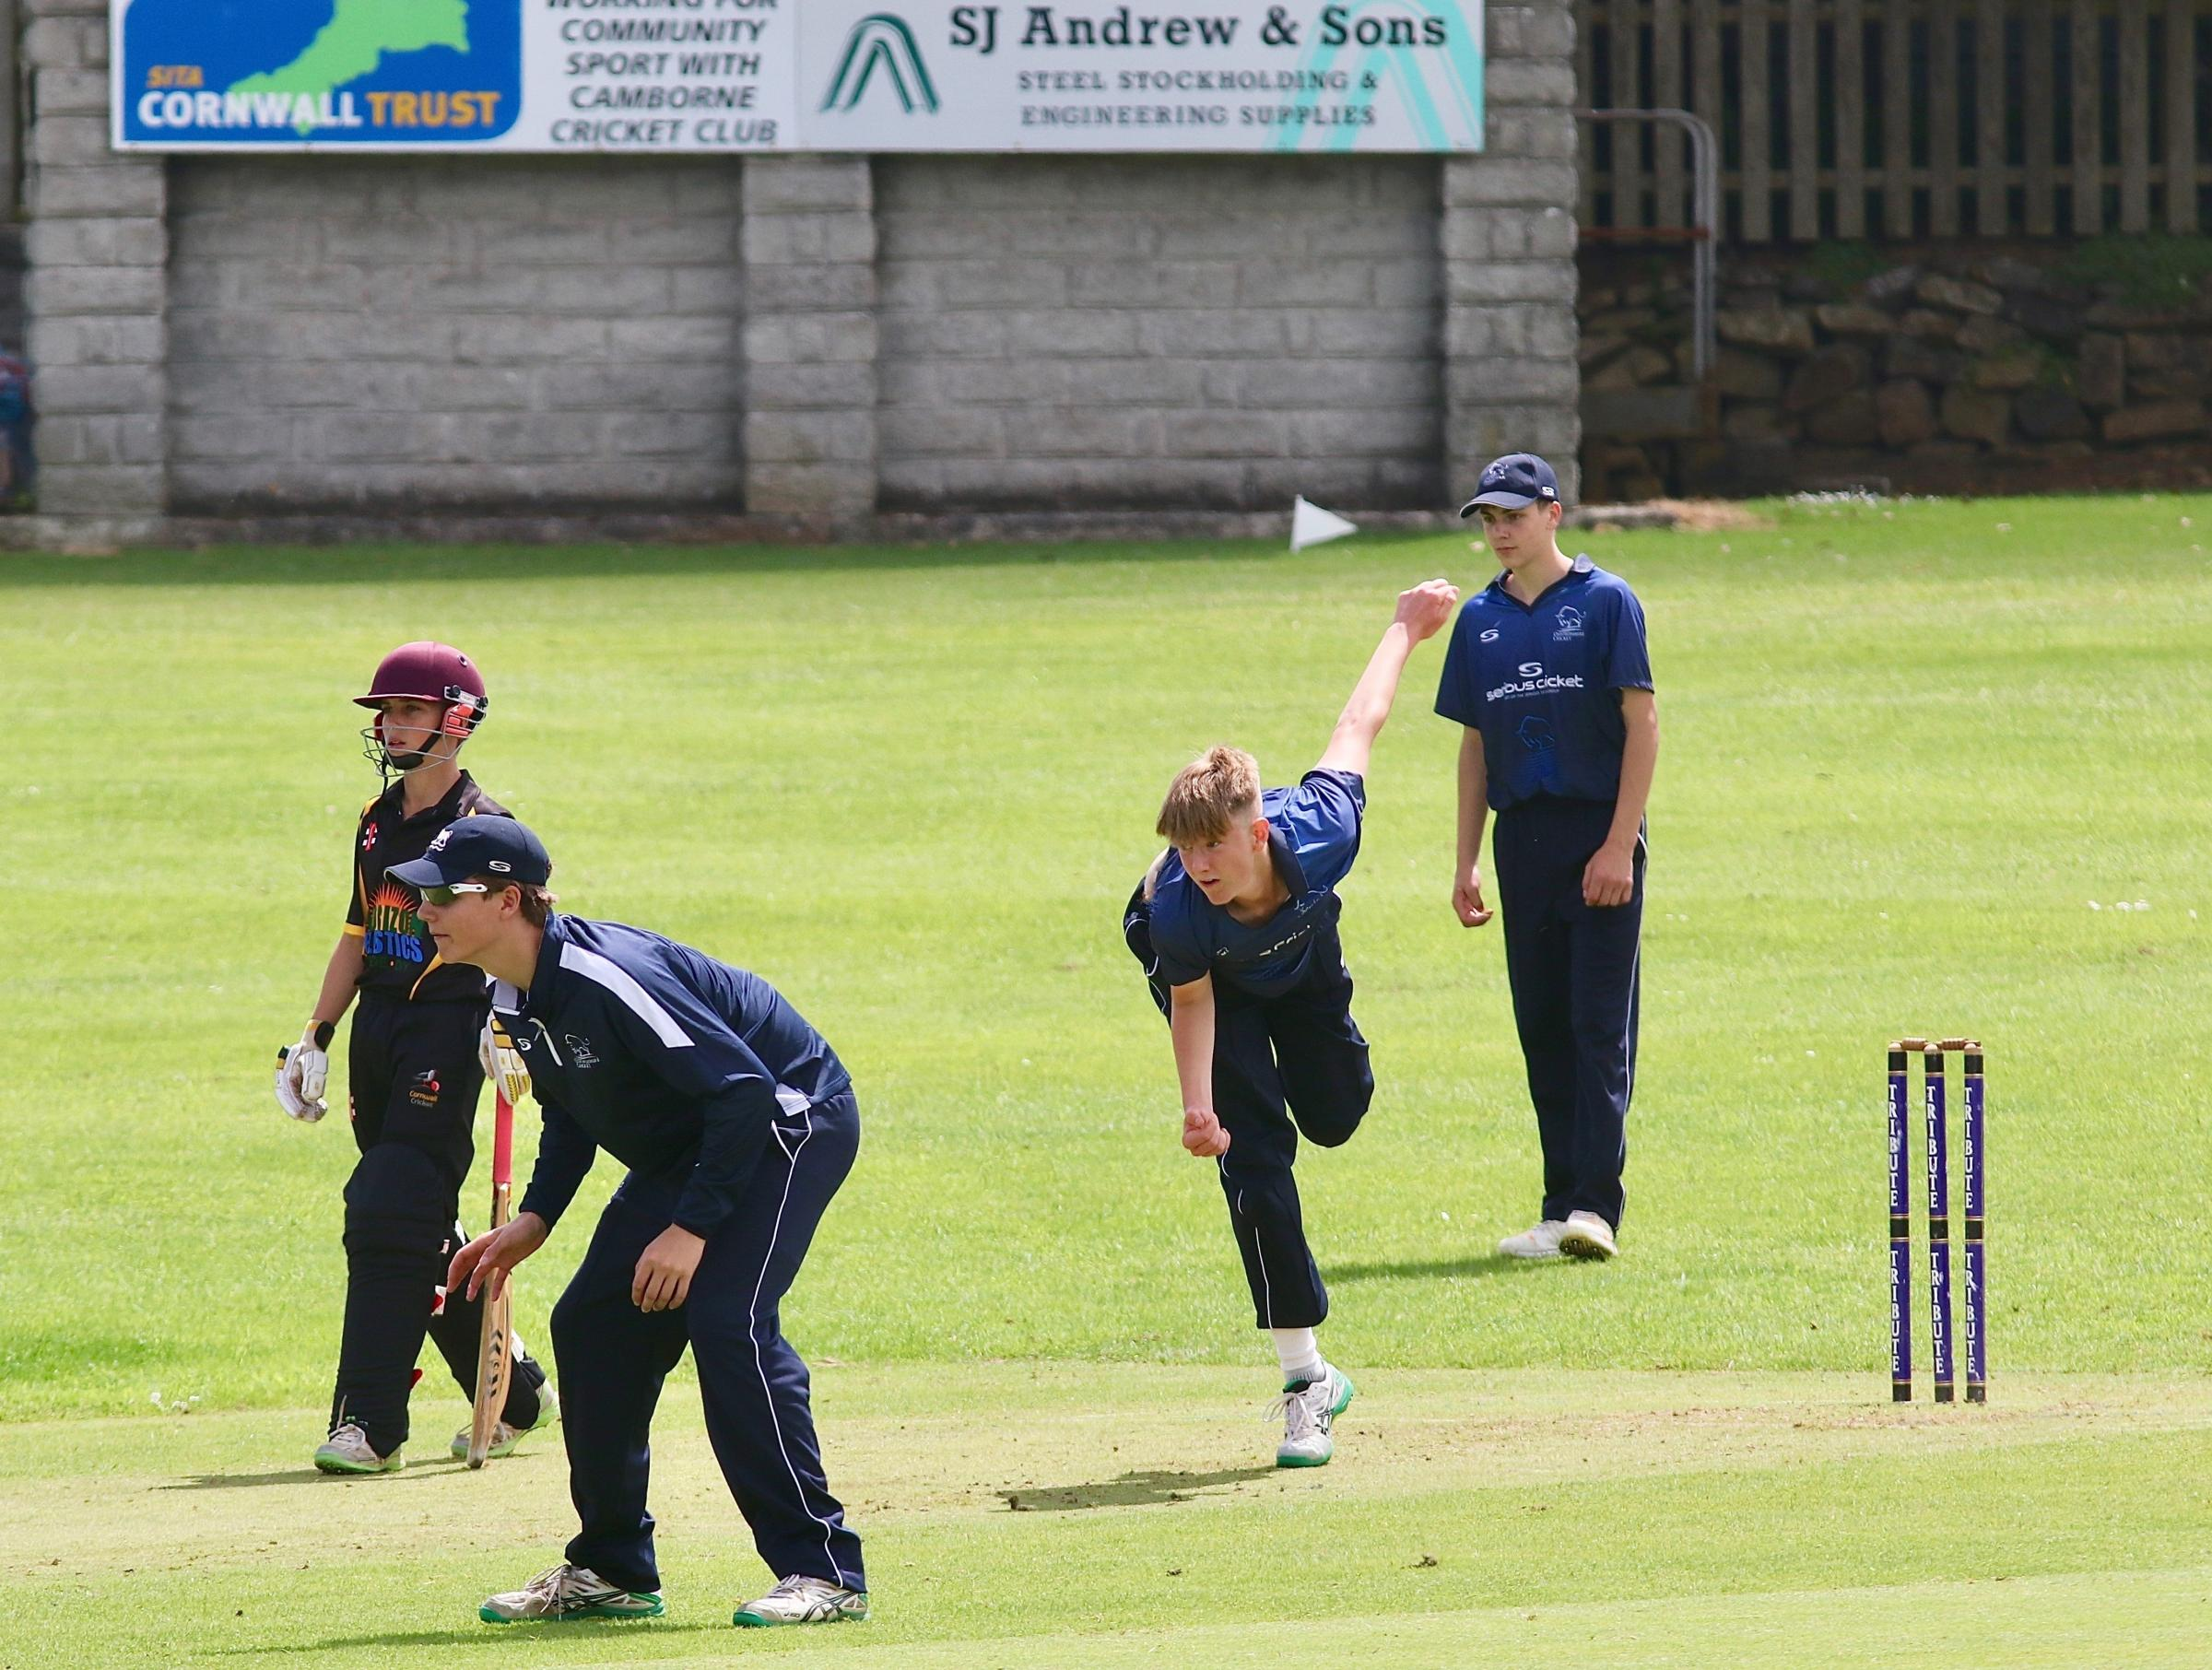 WHAT A HAUL: Tom Lydford-Brace in full flight during his spell of 5-2 for Oxfordshire Under 15s away to Cornwall at Camborne CC